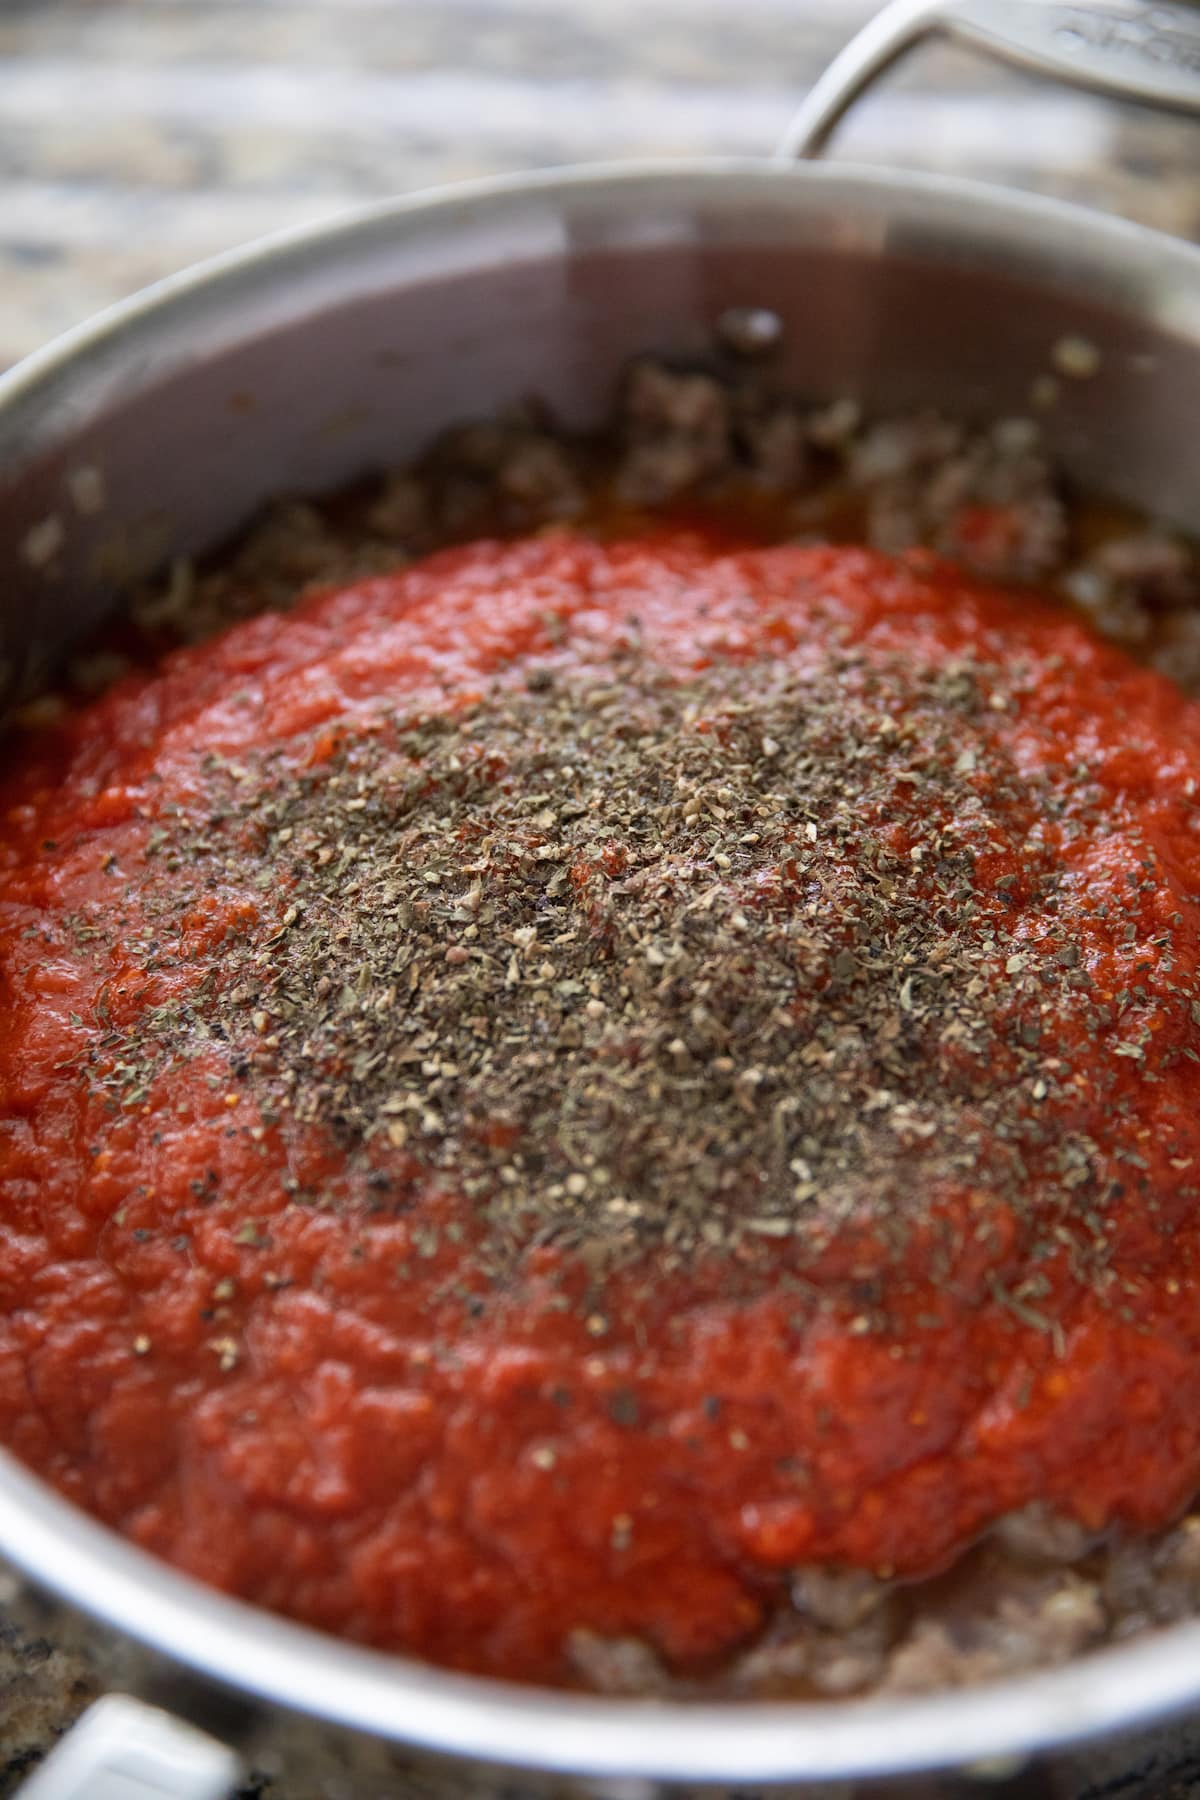 marinara, tomatoes and spices added to deep skillet